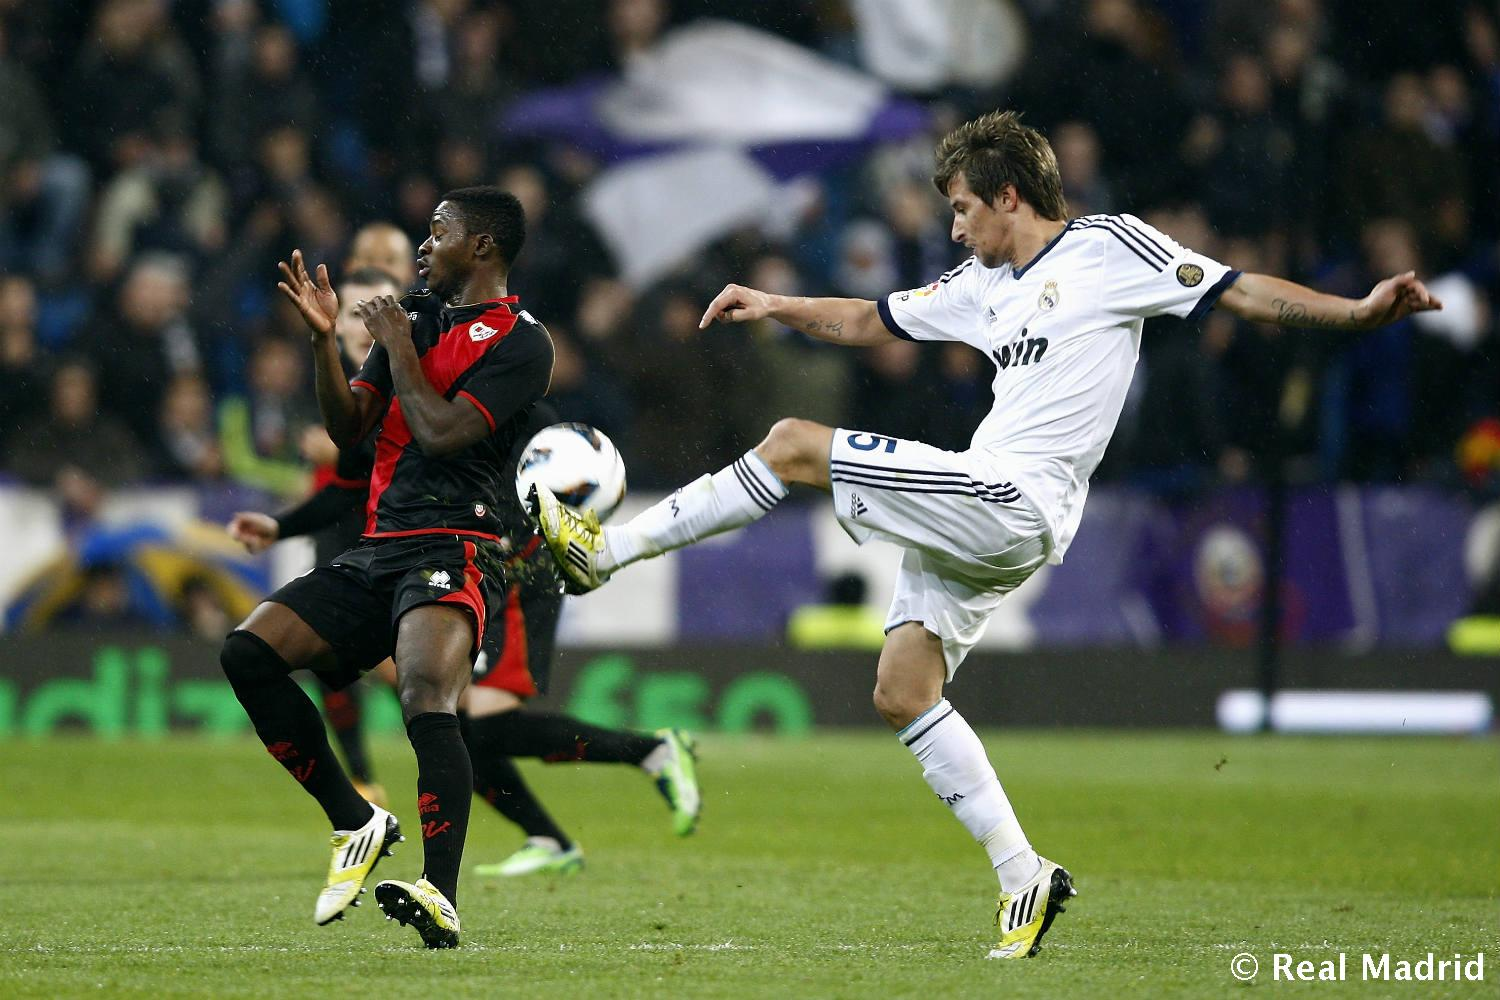 Real Madrid - Coentrão - 27-01-2014